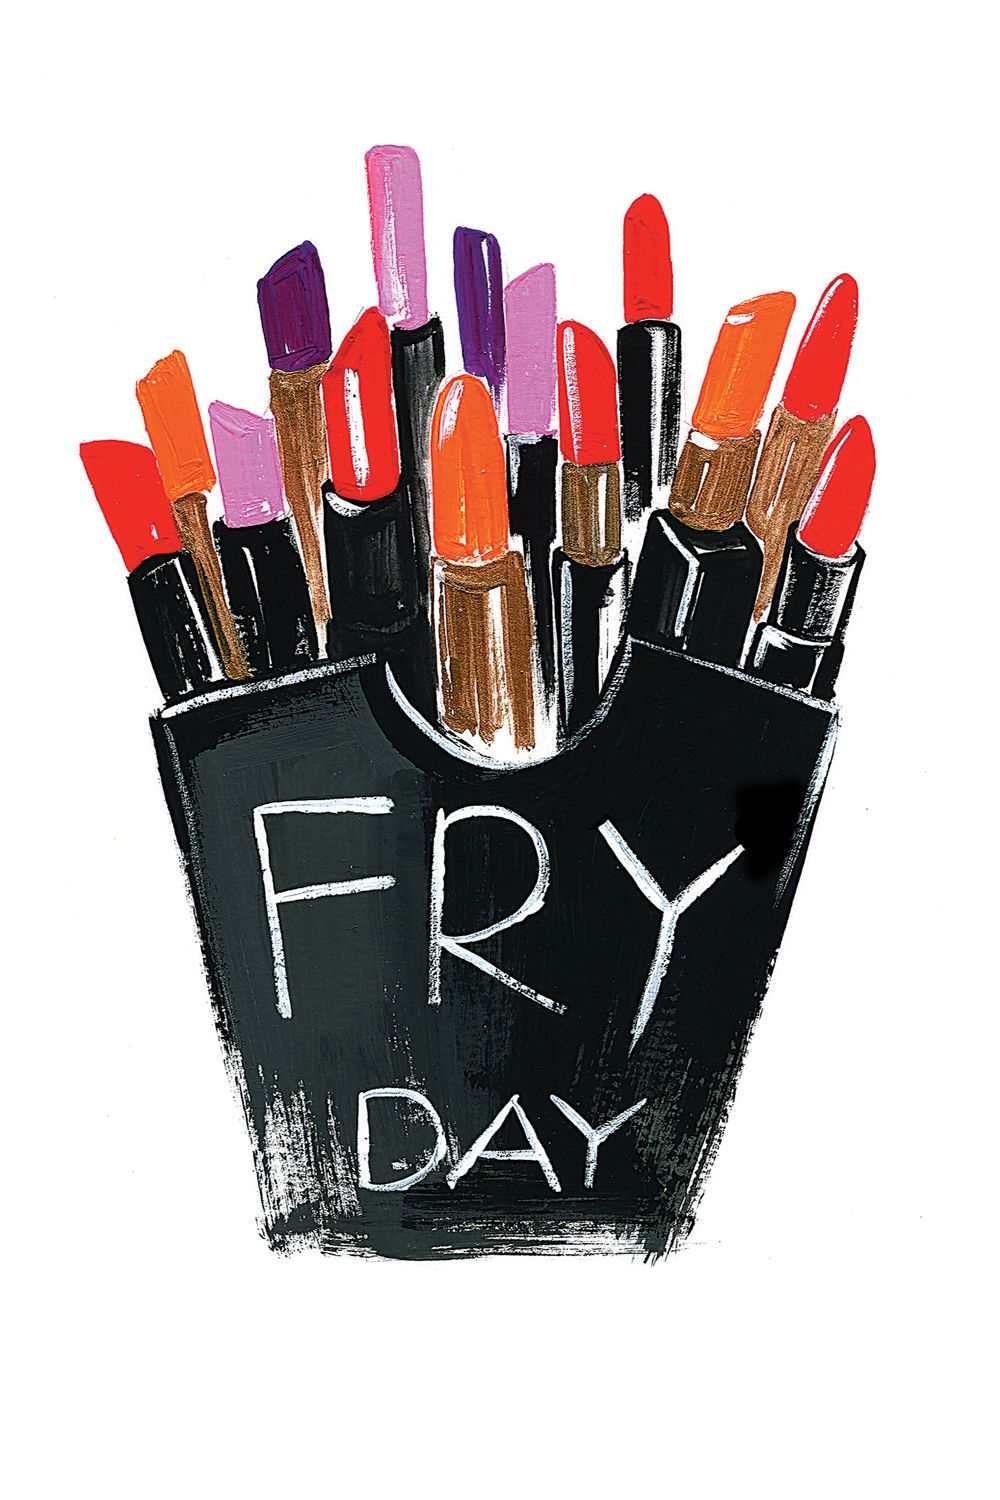 'Fryday' by Rongrong DeVoe Fashion illustration print